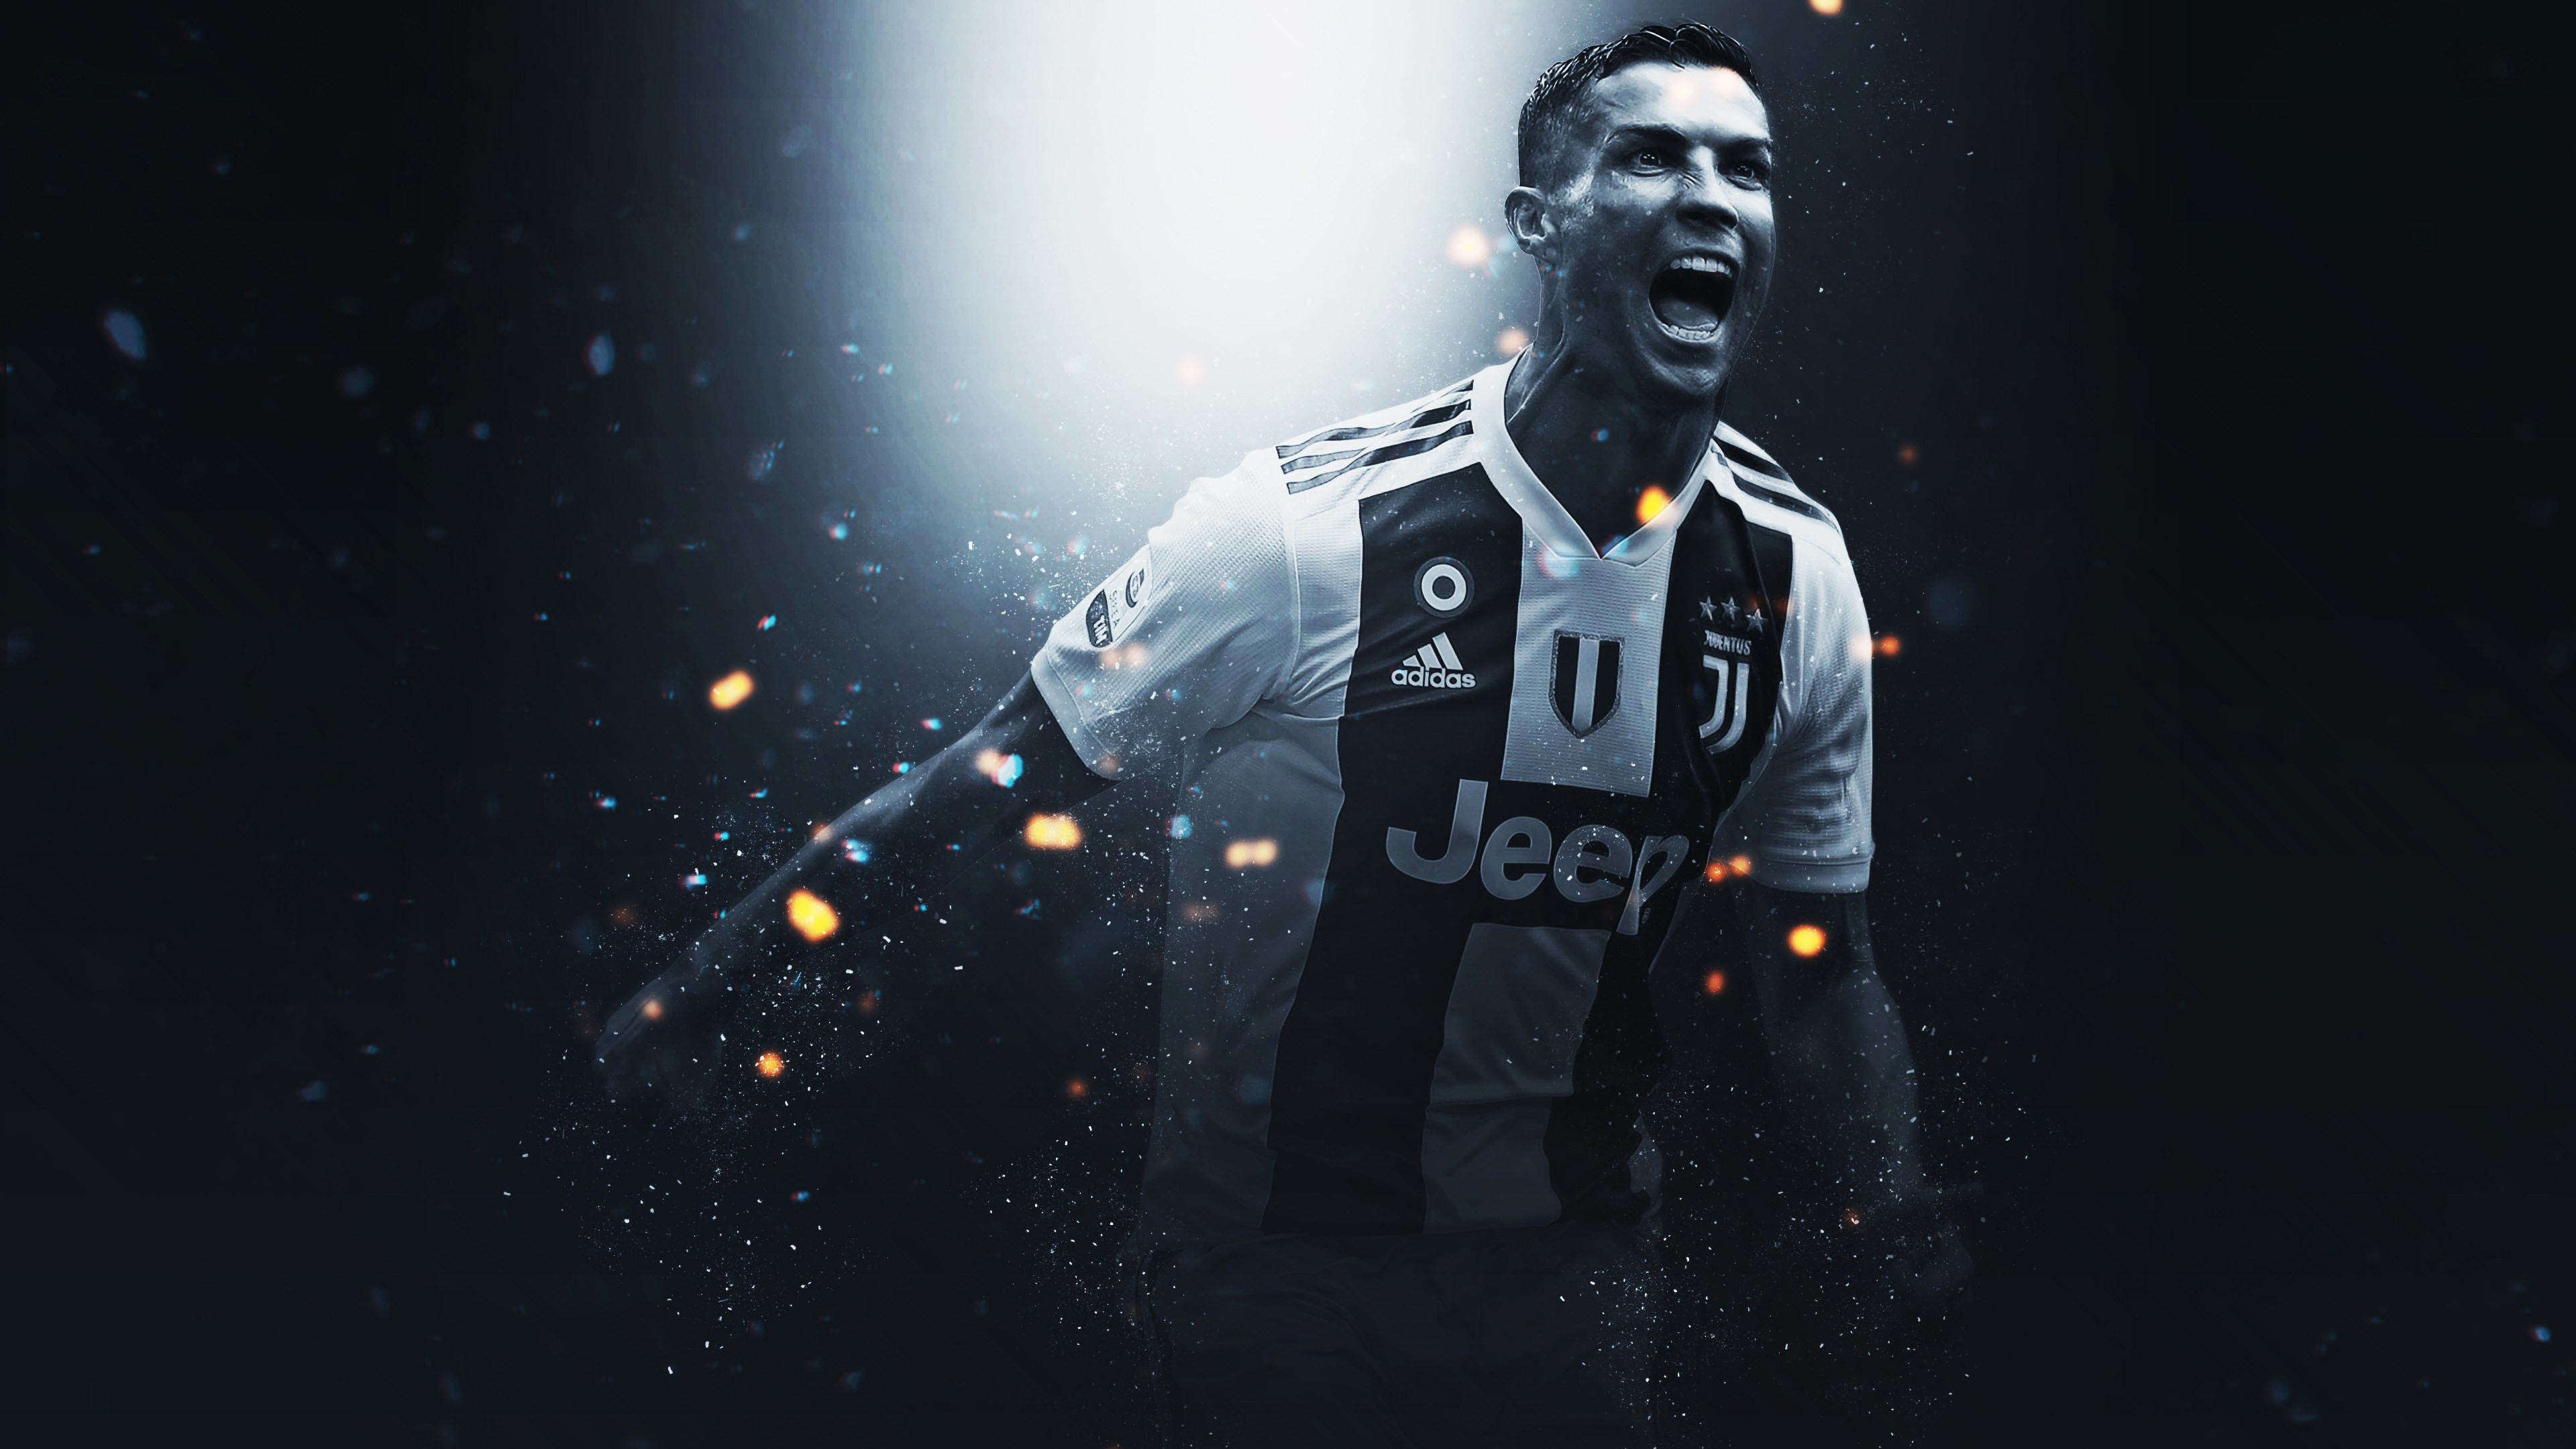 Cristiano Ronaldo at Juventus | 3840x2160 wallpaper